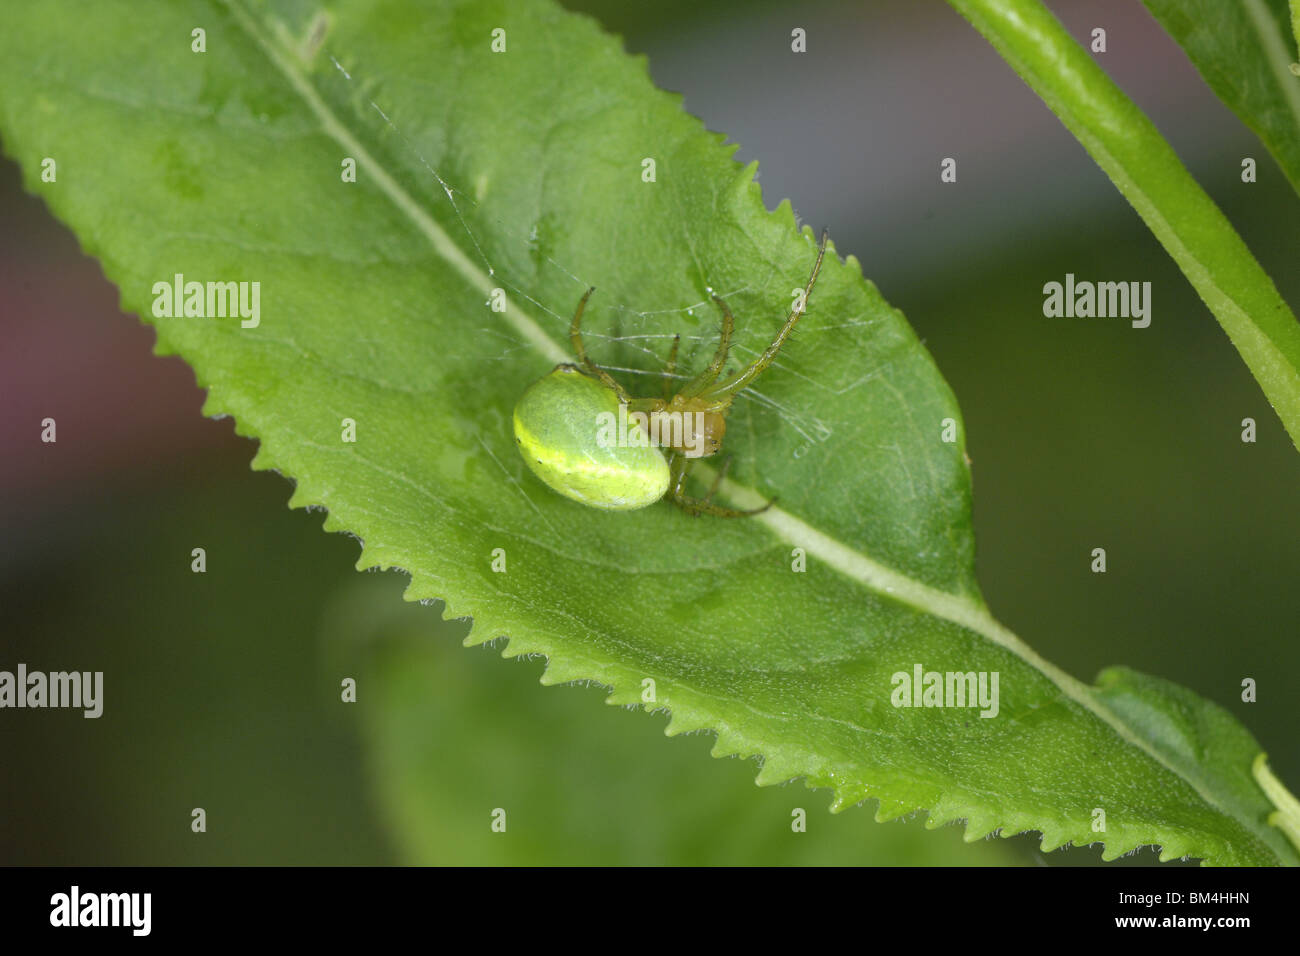 Cucumber green spider on leaf - Stock Image